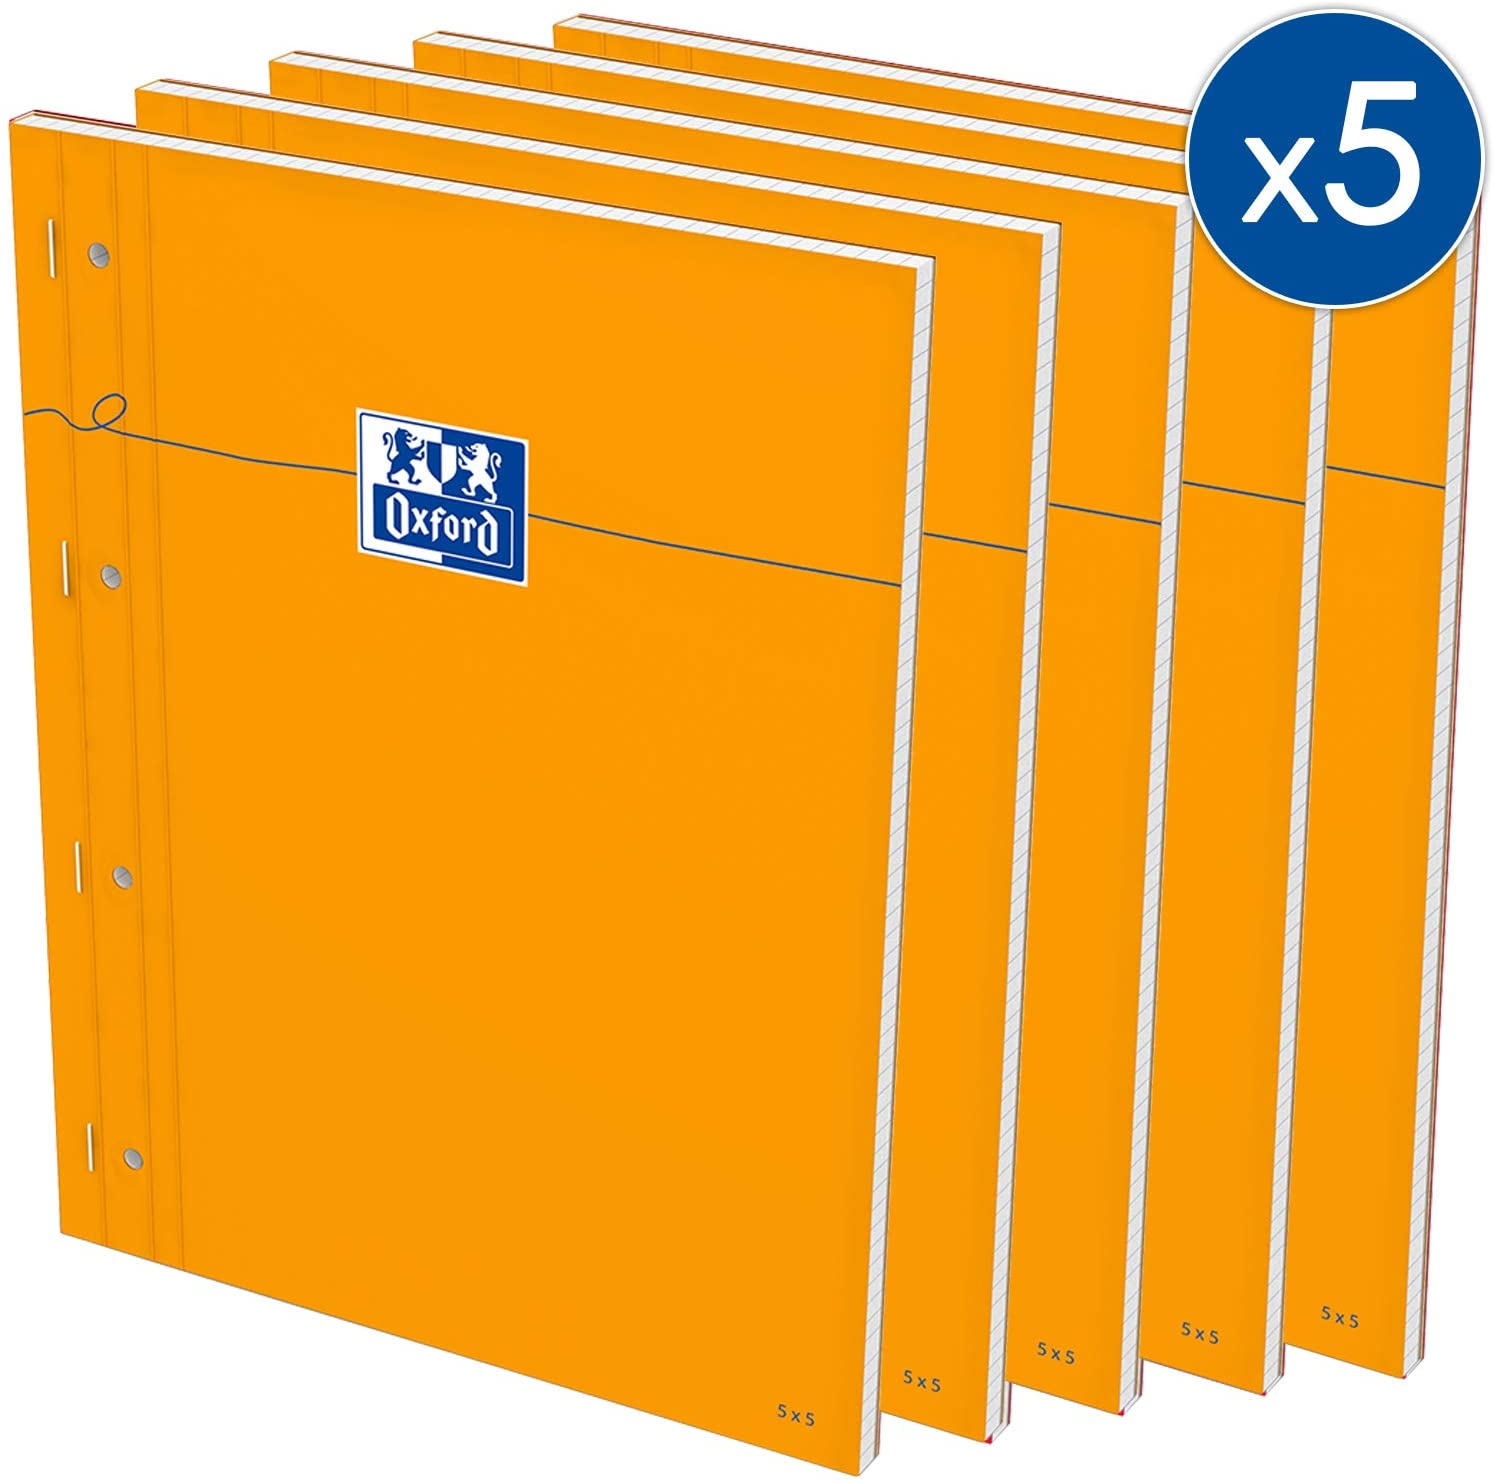 Oxford Stapled Ruled, Perforated Sides Full Page 230x2975x5White Paper (Pack of 5